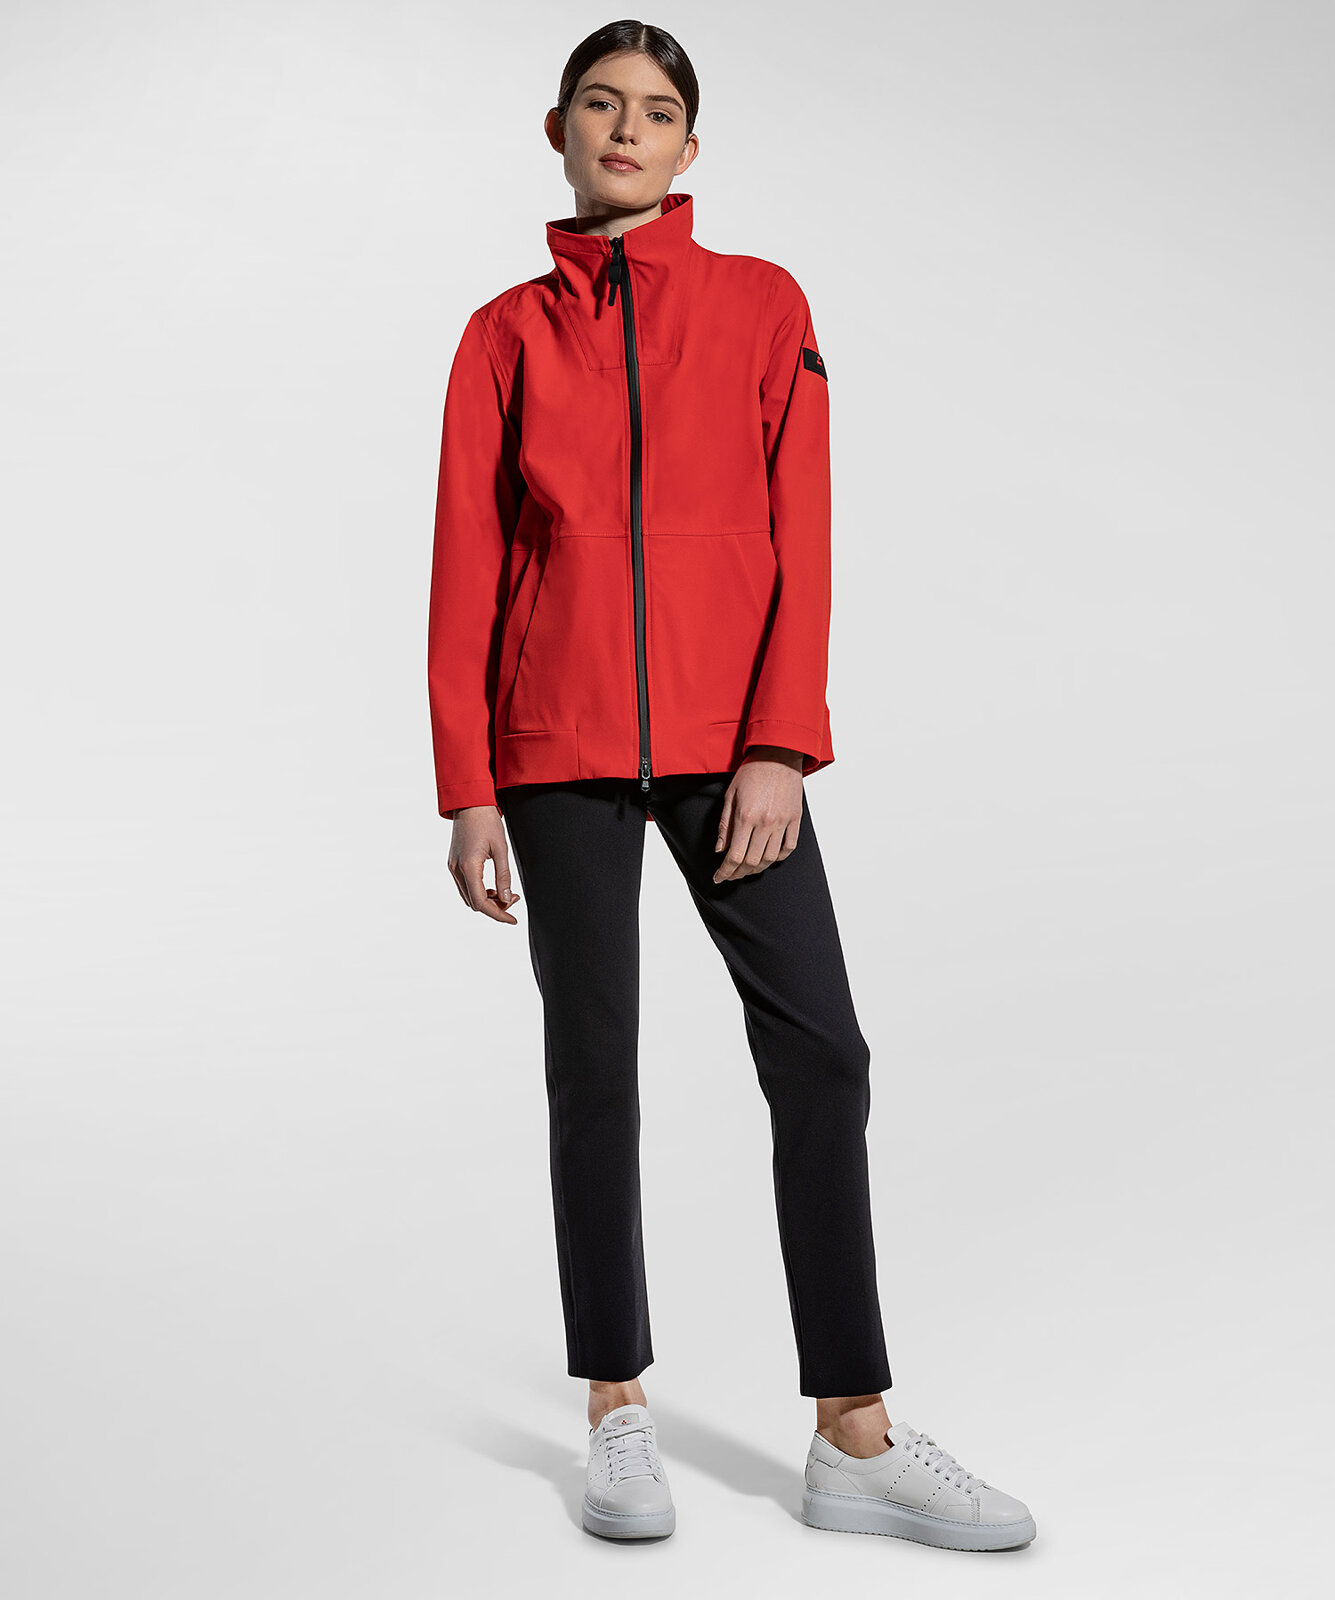 Smooth Stretch And Warm Bomber - Peuterey